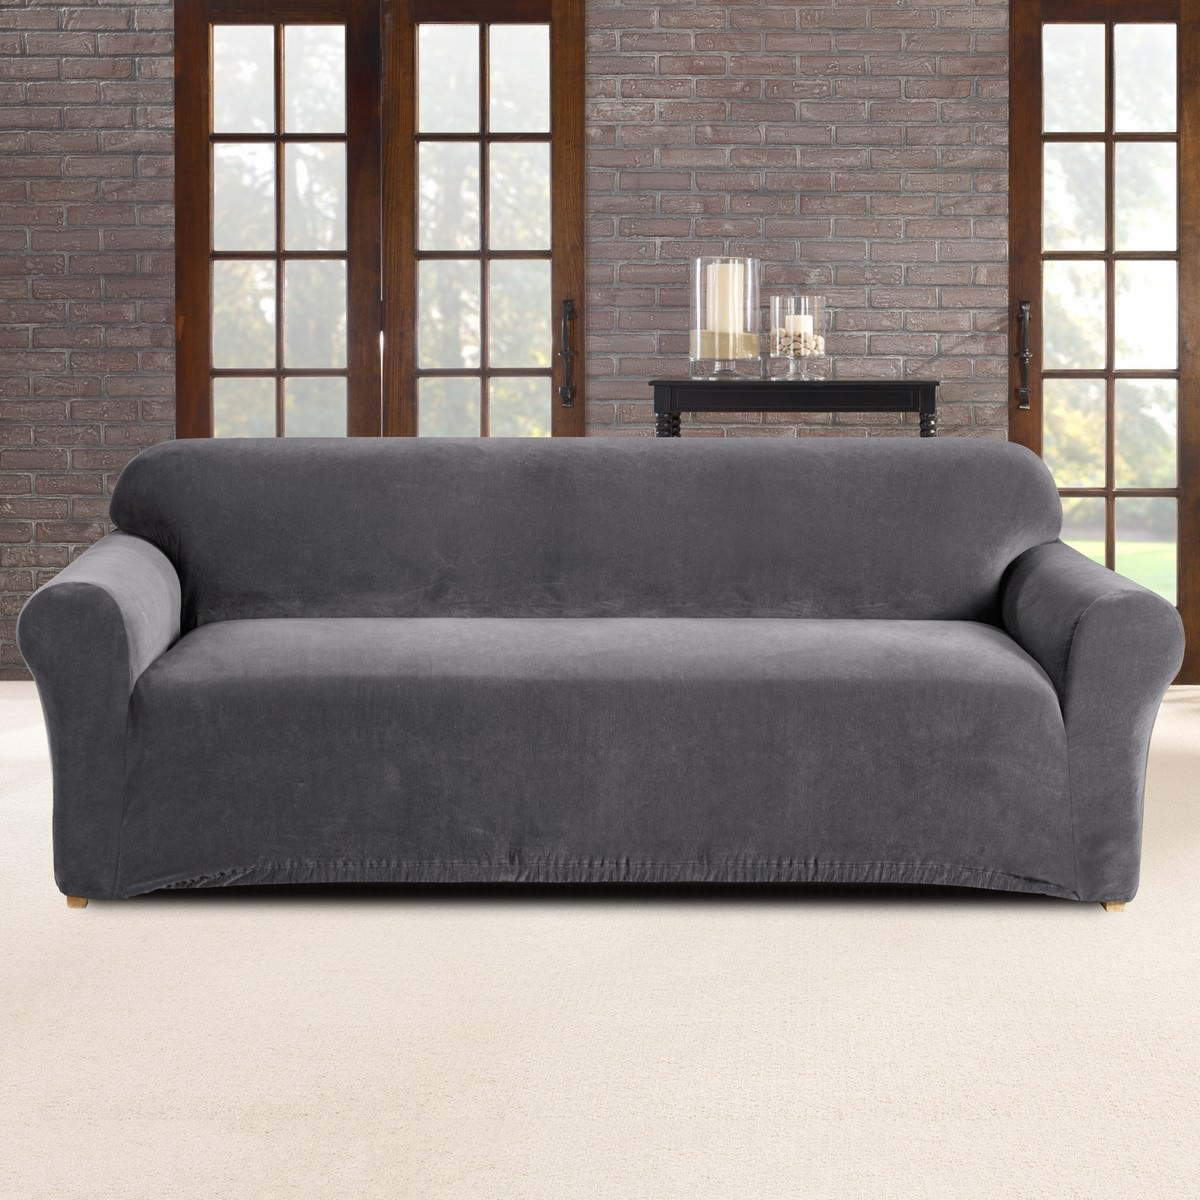 Sure Fit Stretch Pearson Sofa Cover, 3 Seater, Slate